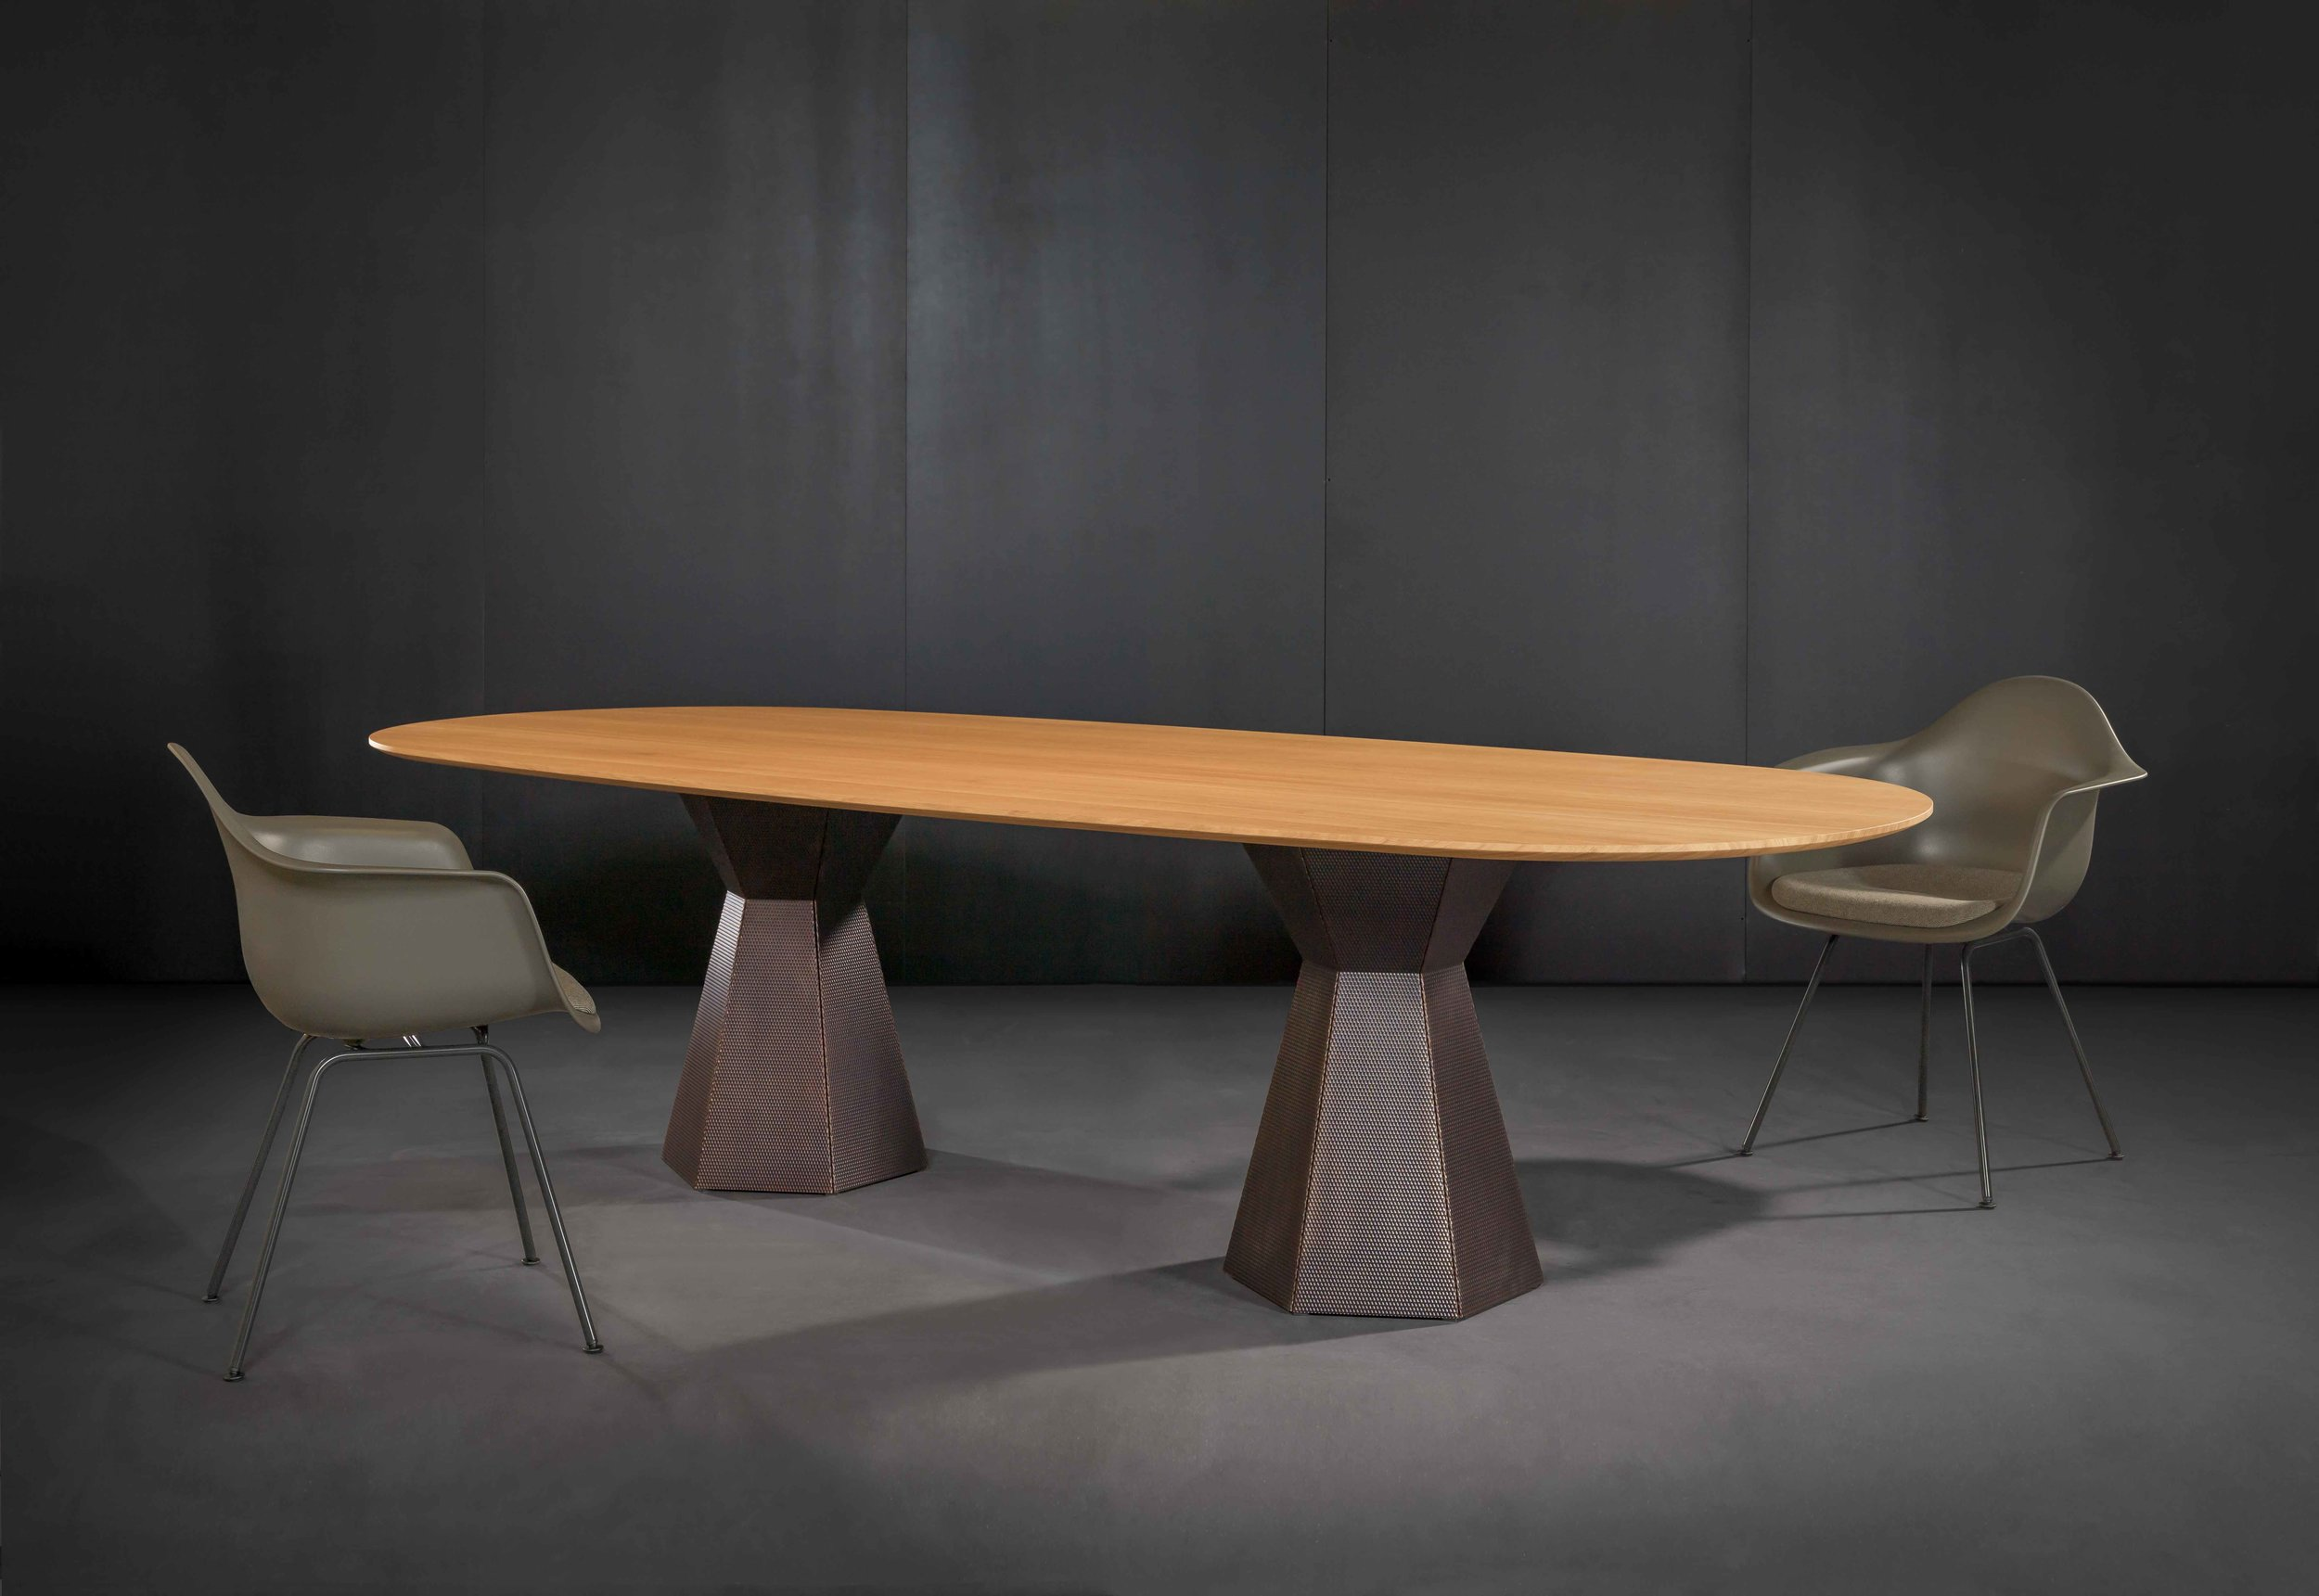 Top Oak, raw wood effect lacquered / Edge K 79 / Base Nordic brown 7000